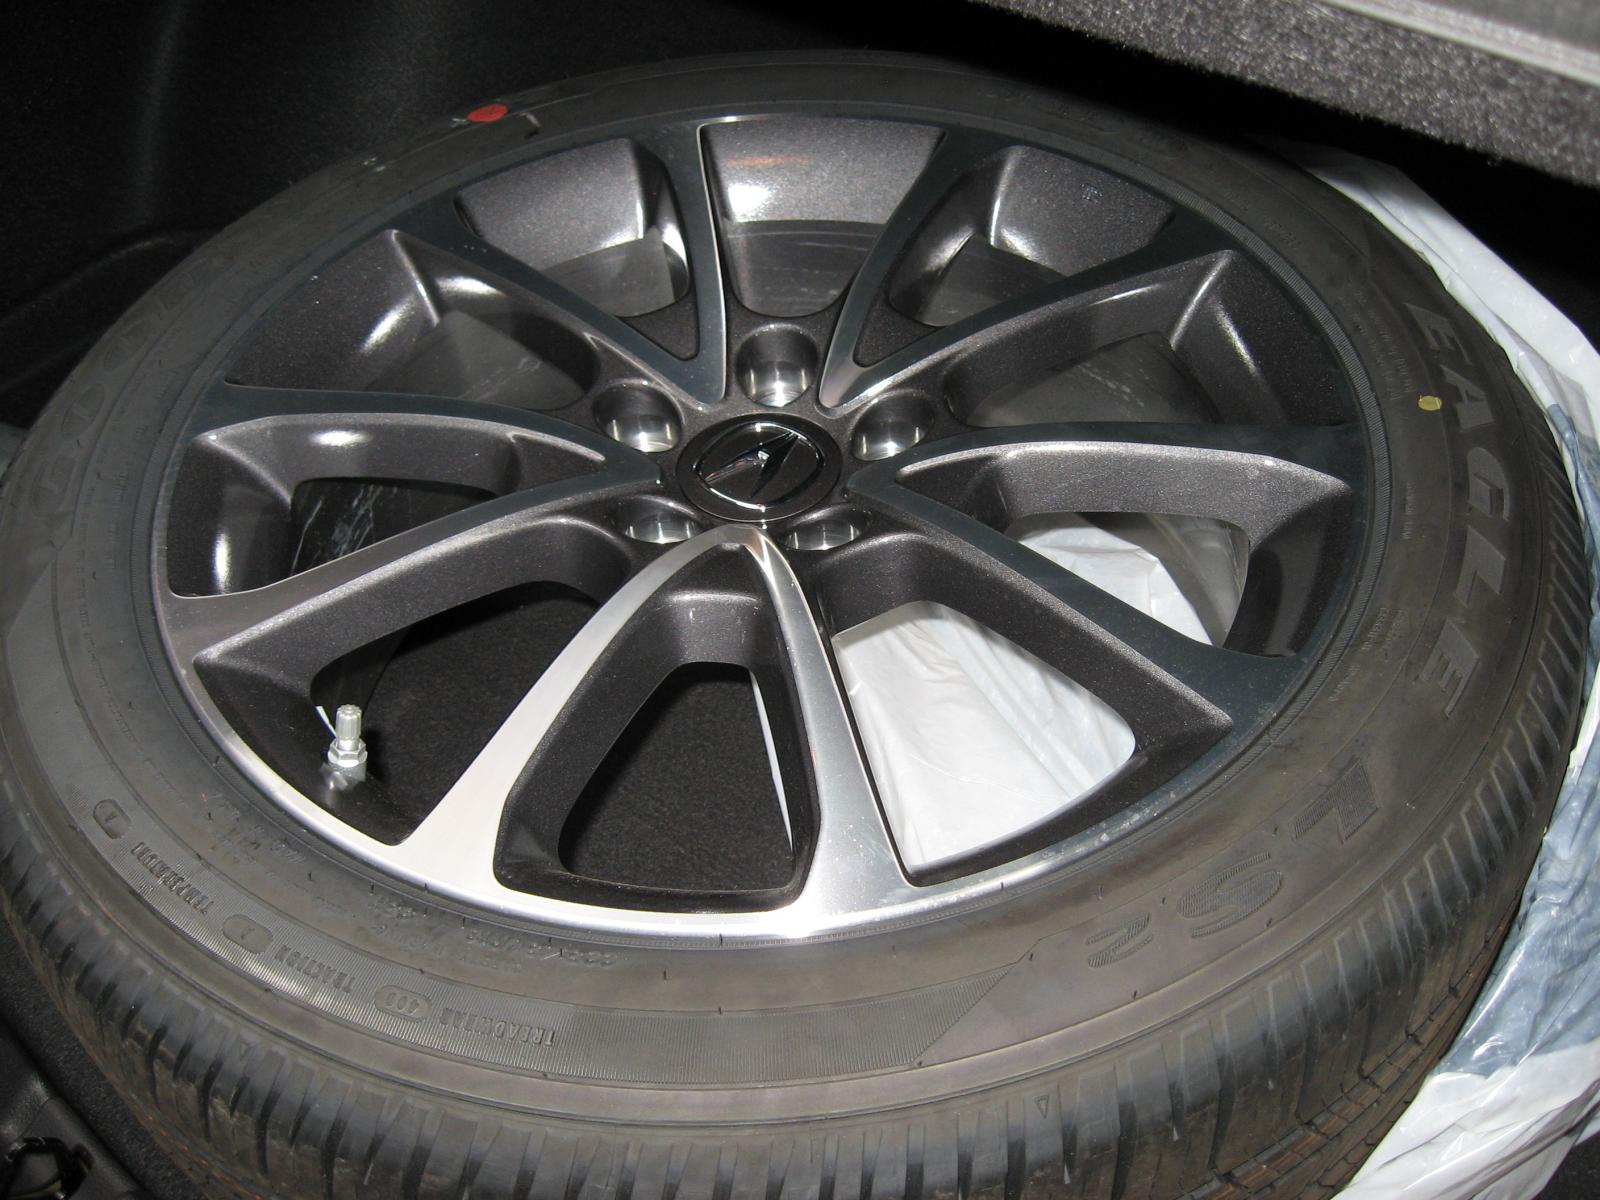 Selling My Acura TLX Rims And Tires New England Acura TLX Forum - Acura tires